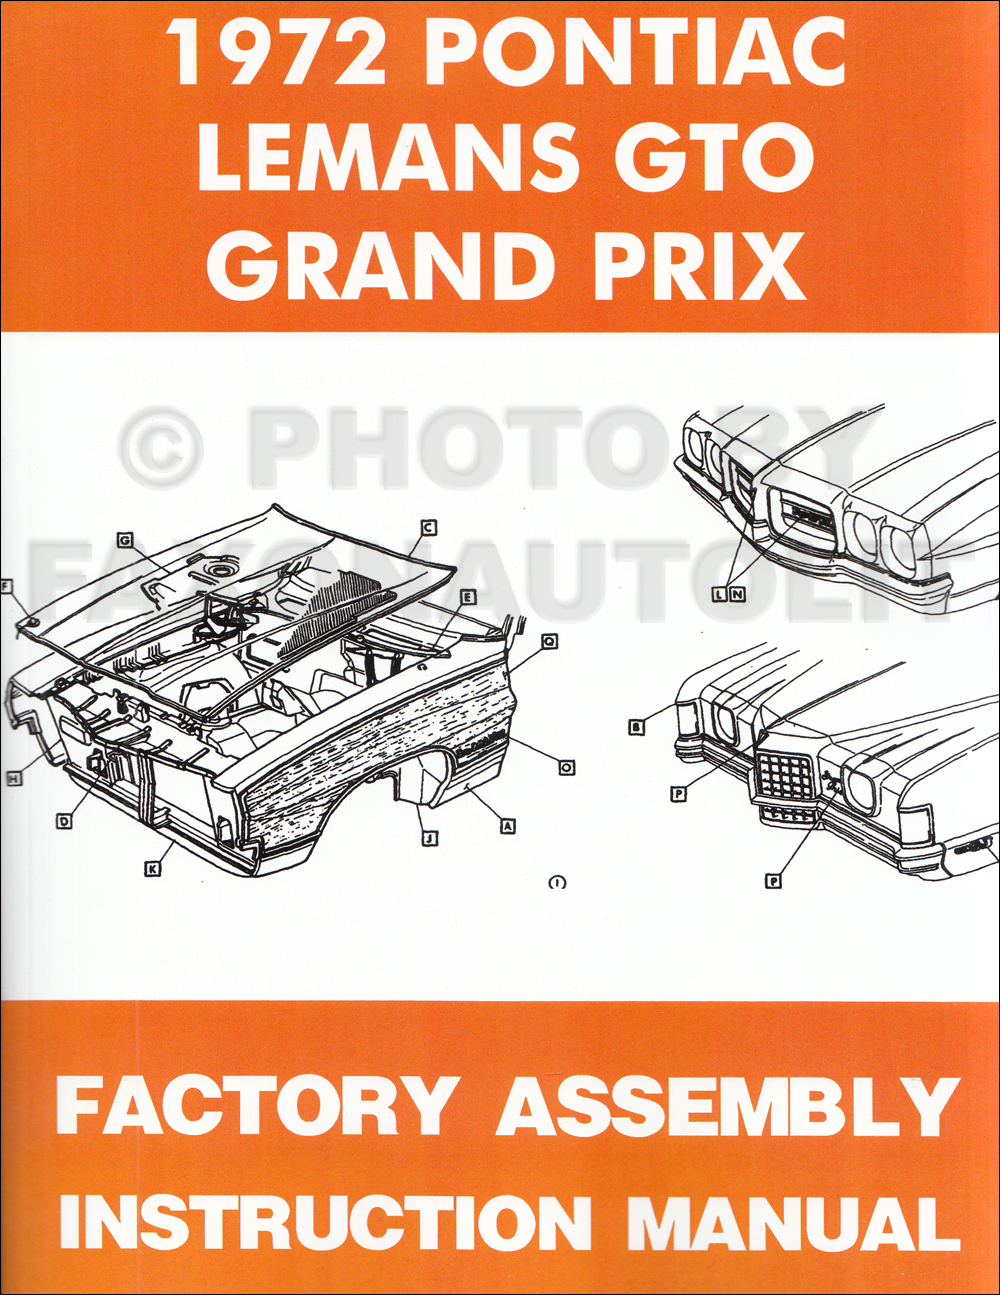 1972 Pontiac LeMans, GTO, and Grand Prix Assembly Manual Reprint